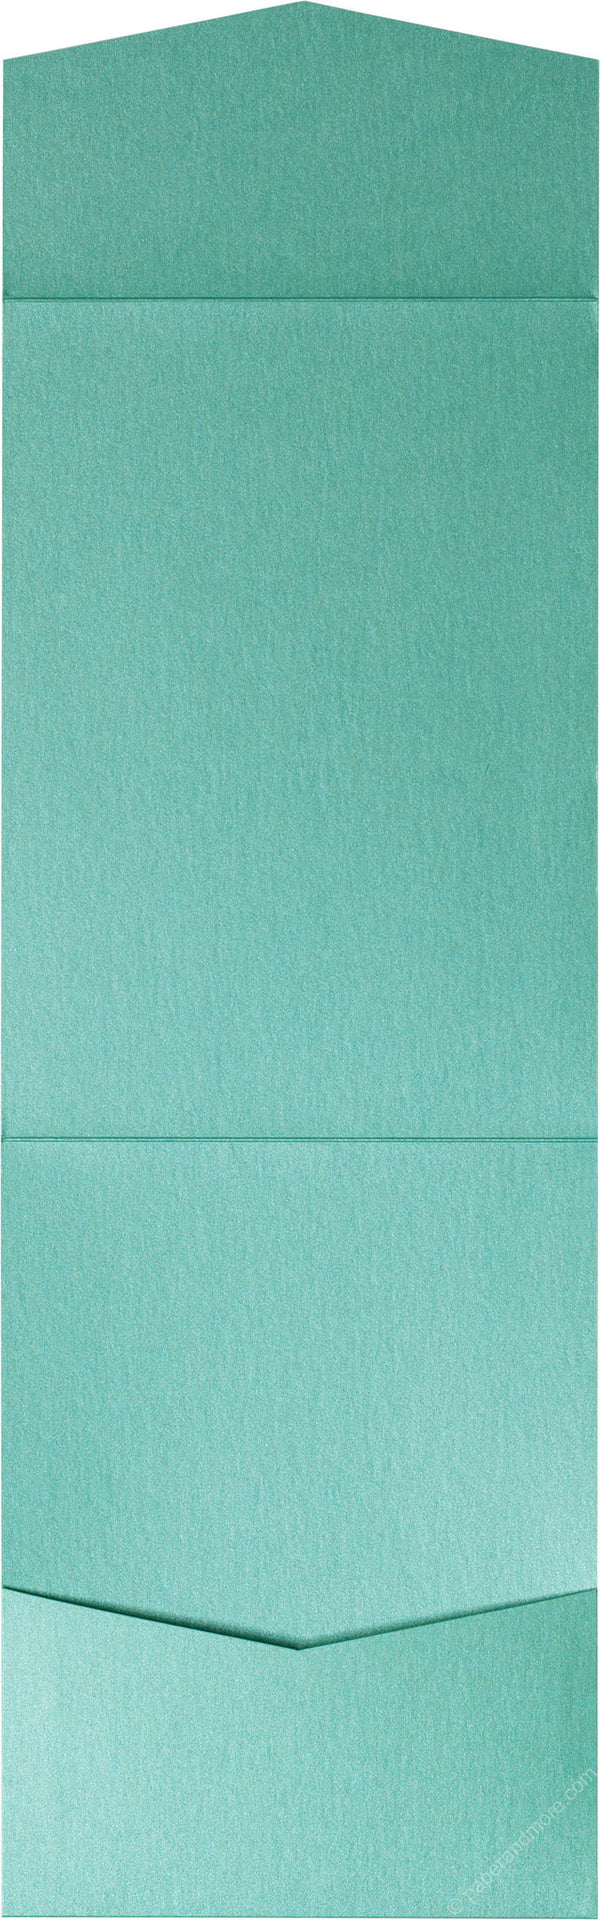 Aqua Lagoon Metallic Pocket Invitation Card, A7 Cascade - Paperandmore.com